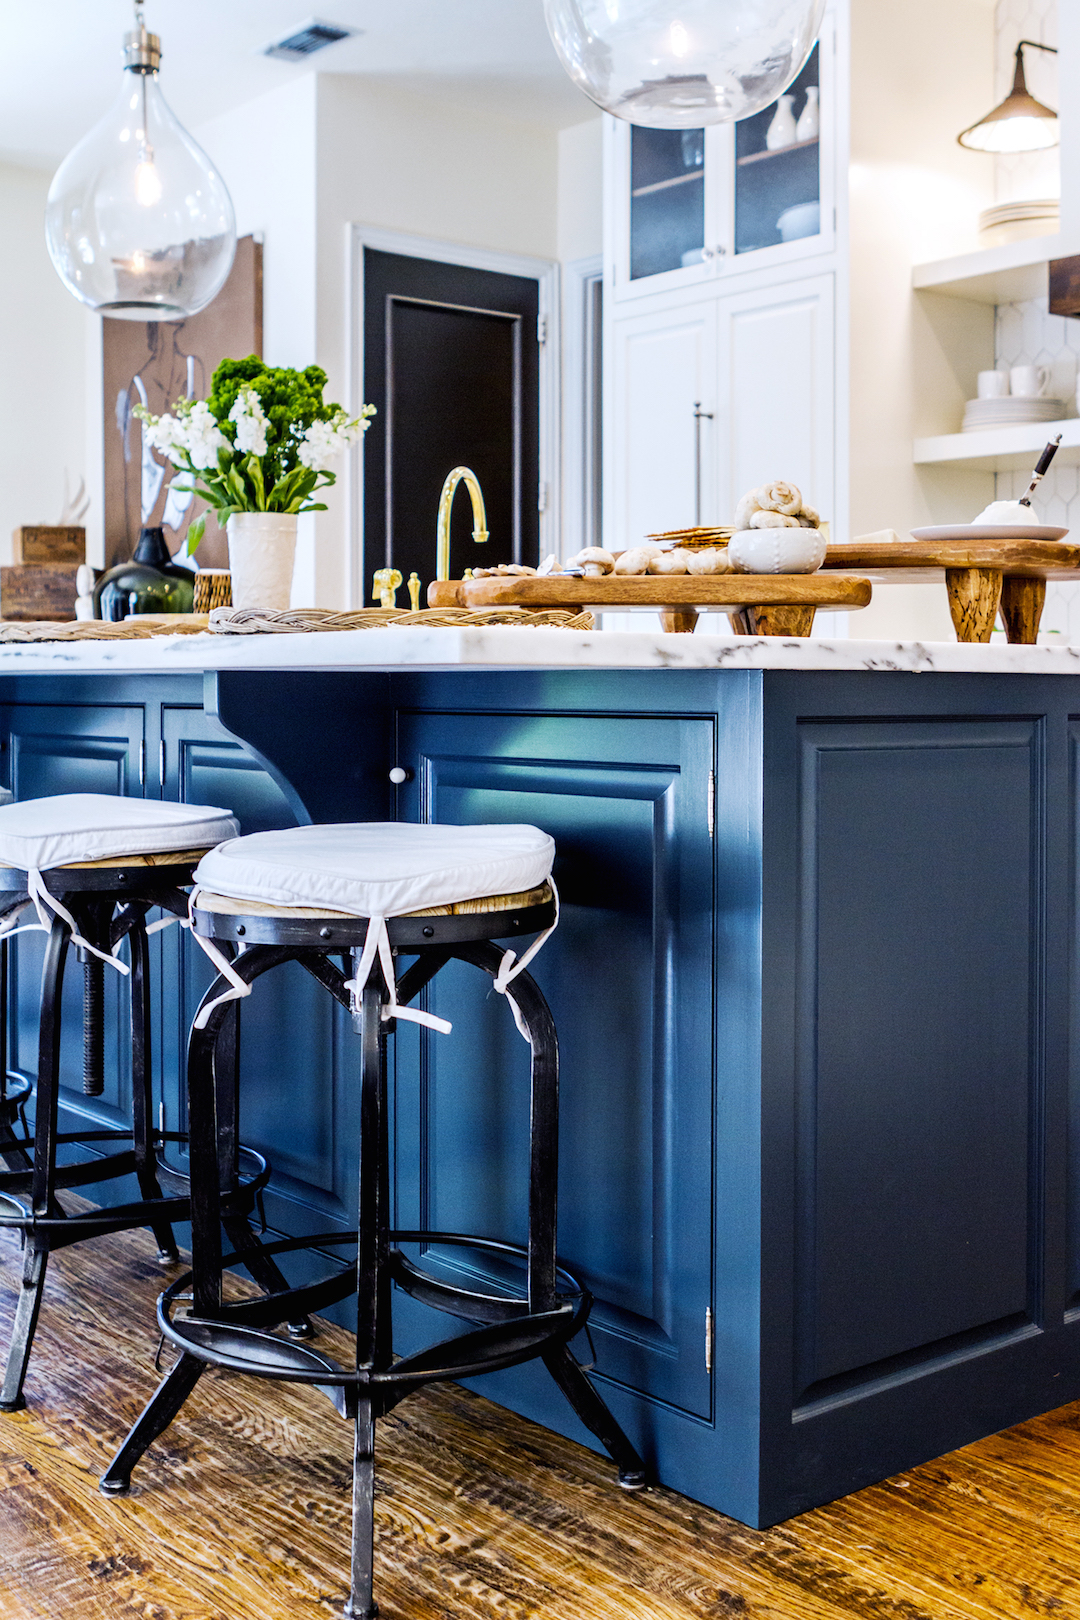 Decor Inspiration A Go To Kitchen The Simply Luxurious Life 174